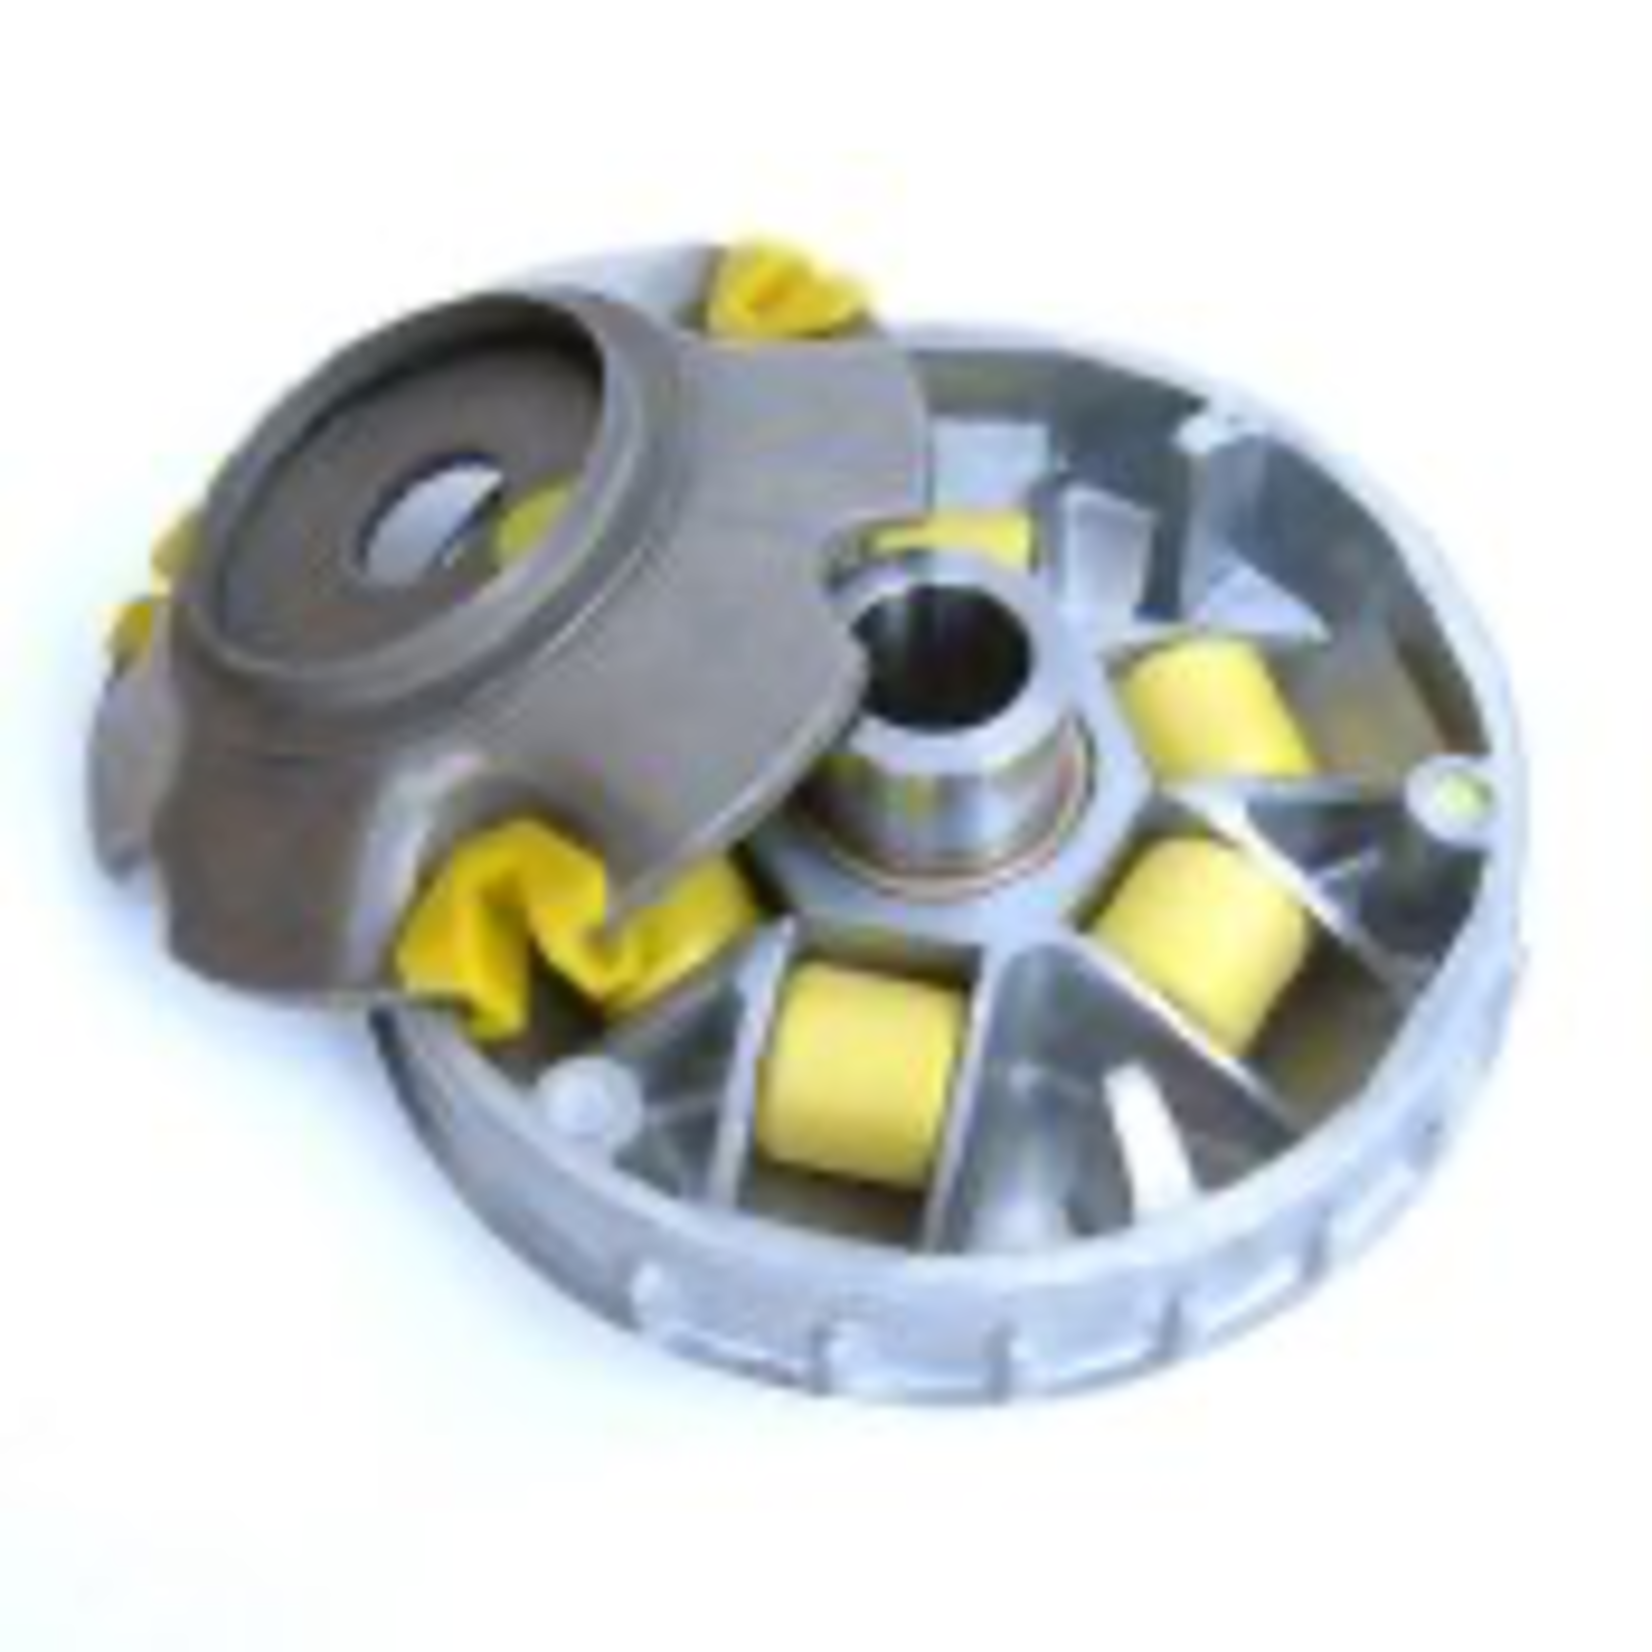 Parts Variator, Primary Inner ET/LX/LXV150 (Incl.Rollers and Shoes)